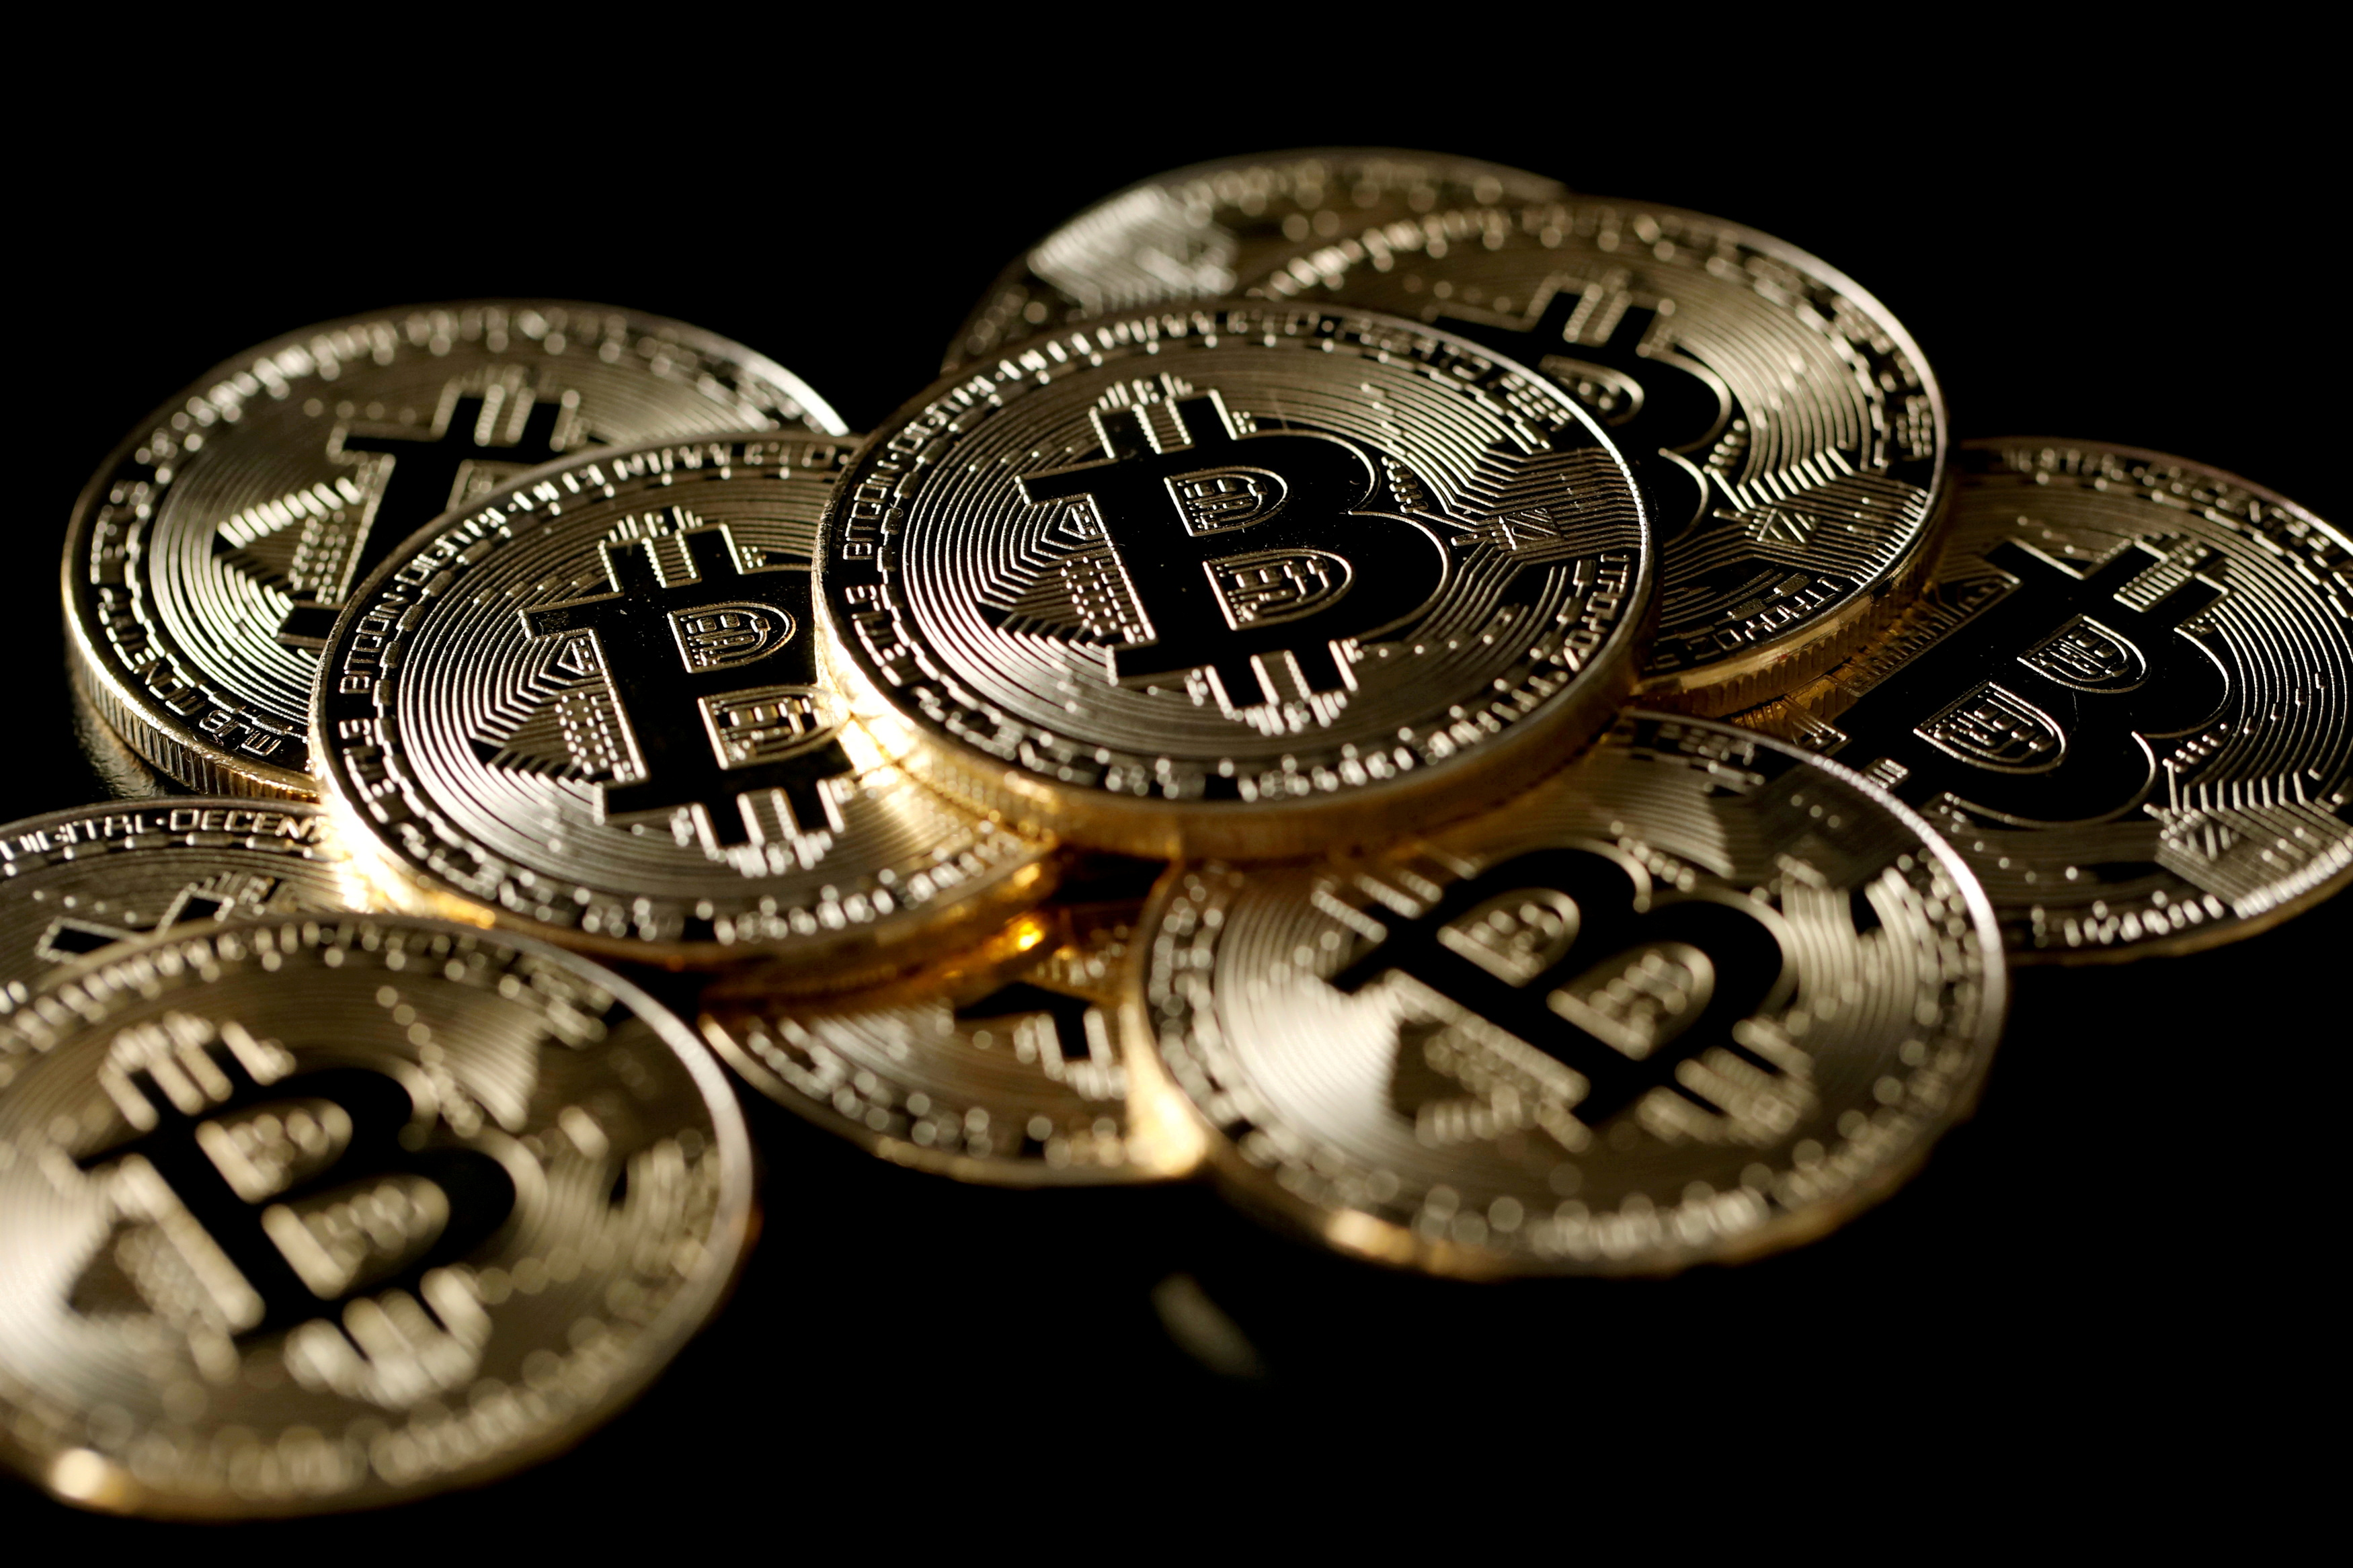 A collection of virtual currency bitcoin tokens are displayed in this picture illustration taken Dec. 8, 2017. REUTERS/Benoit Tessier/Illustration